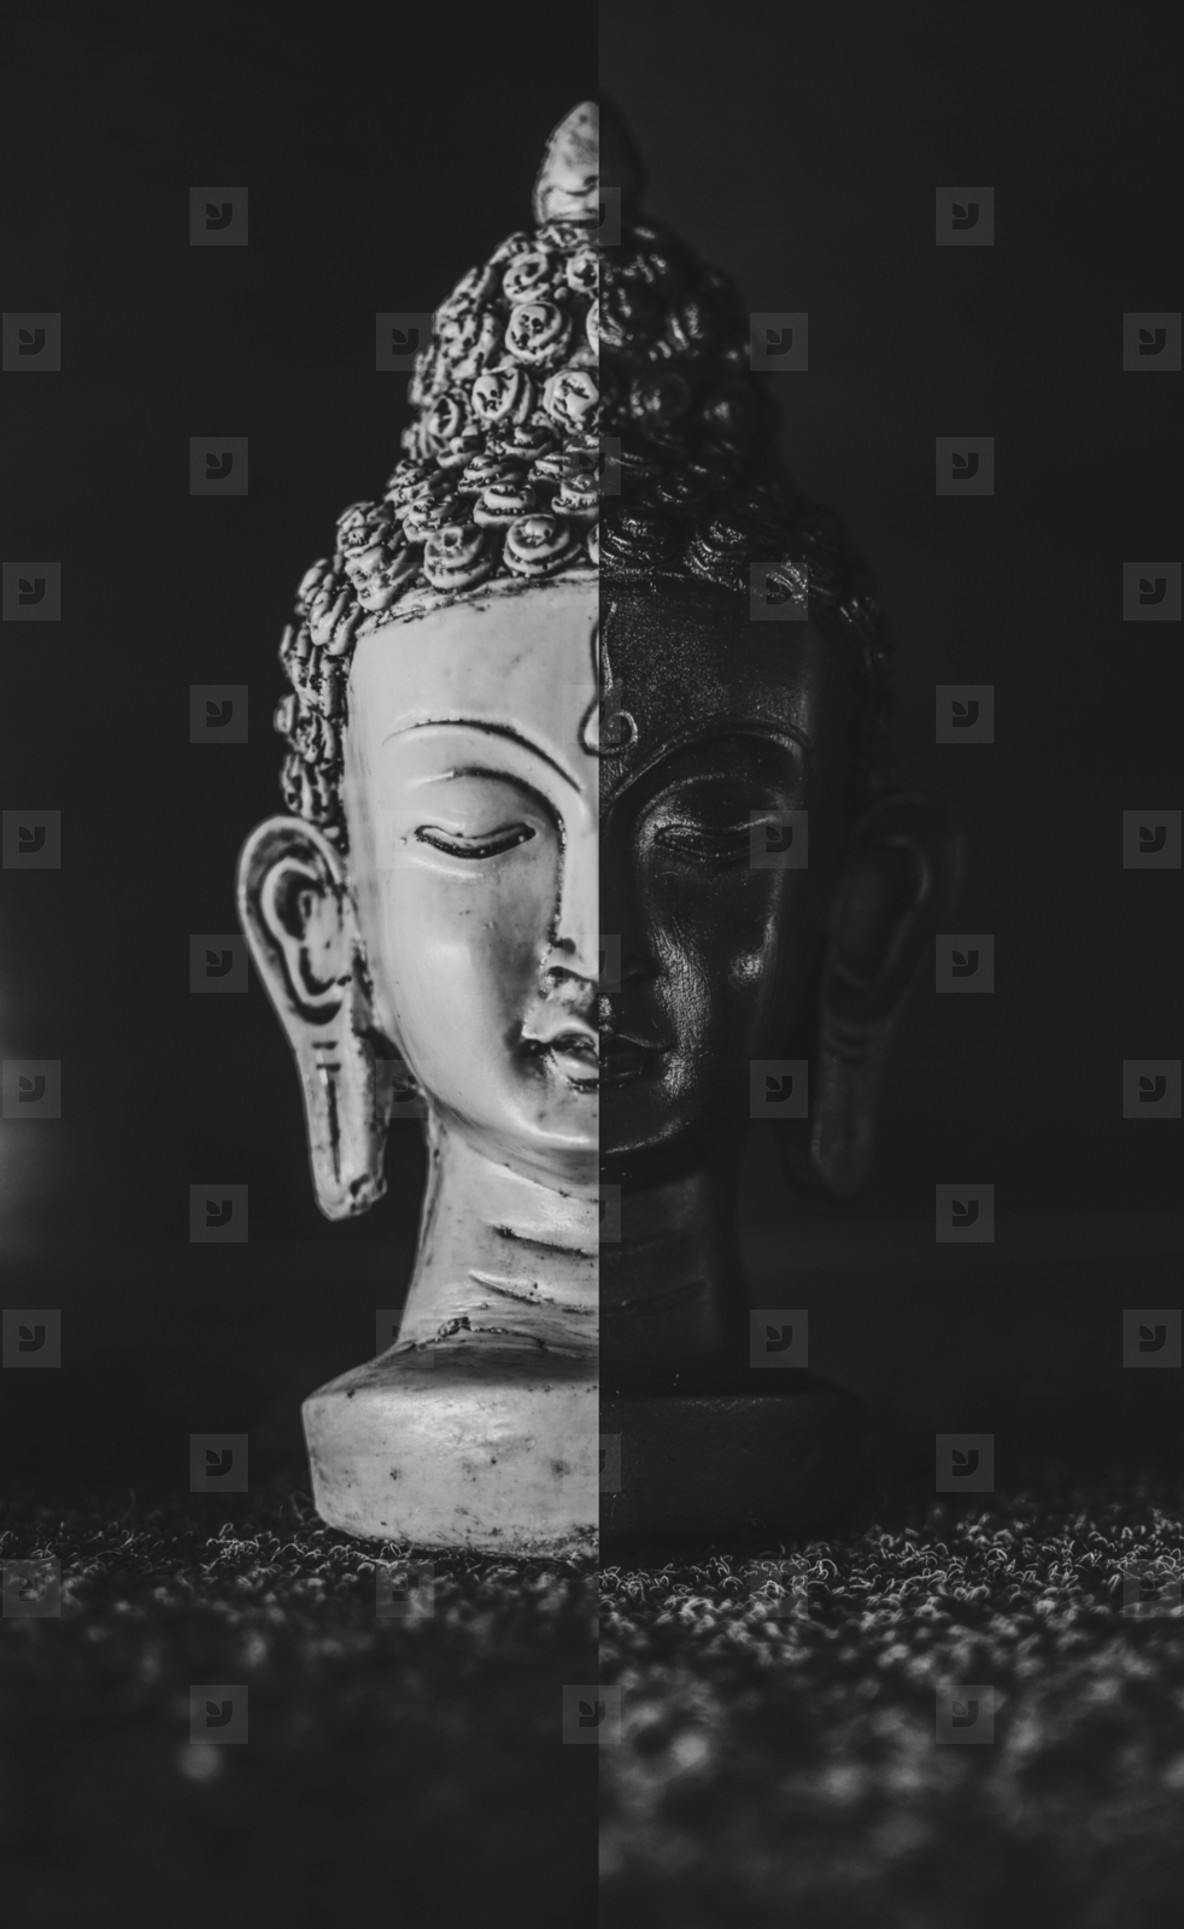 Buddha collage black and white